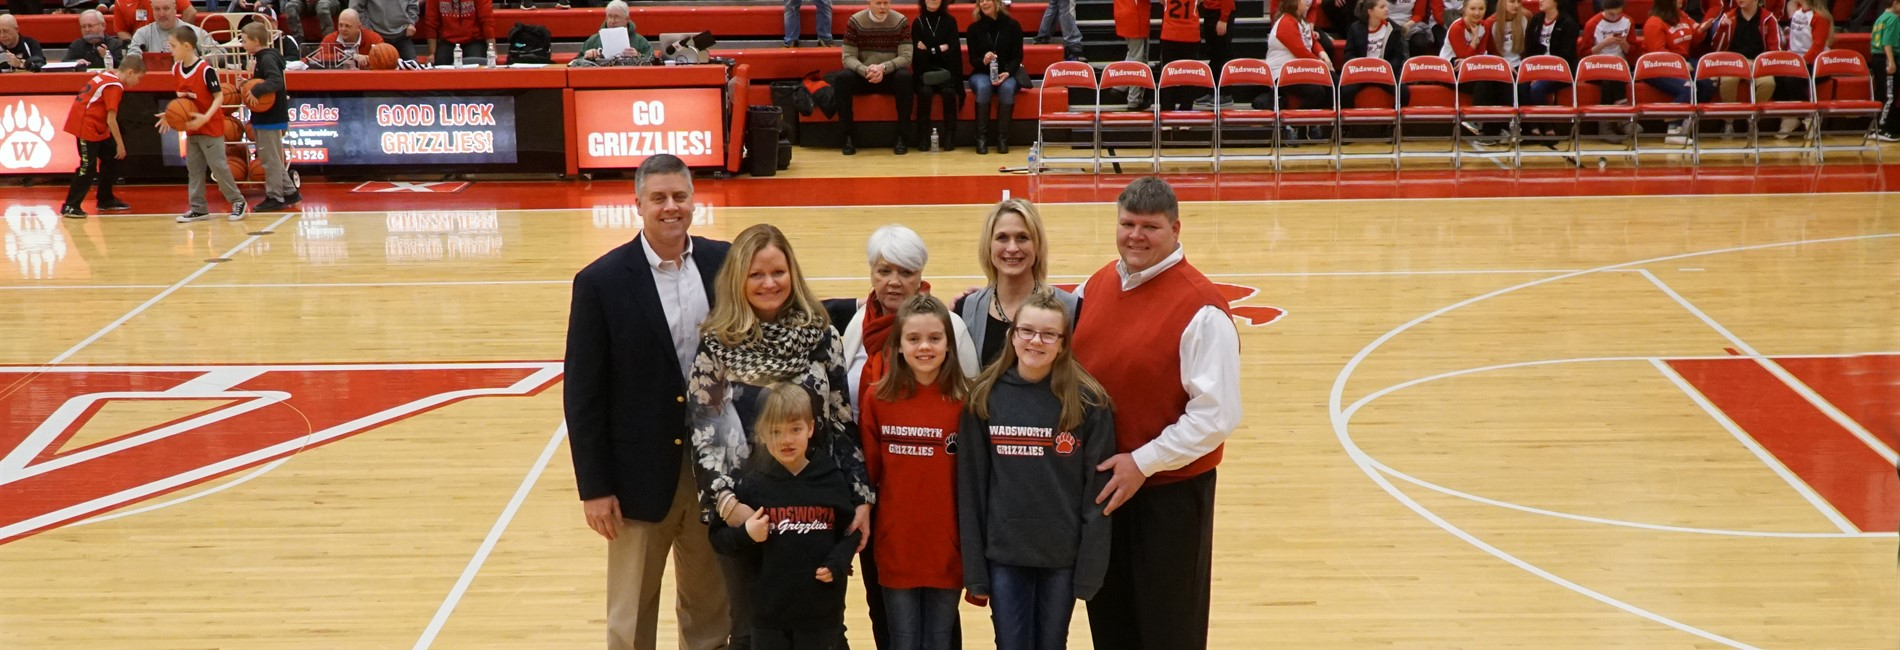 Coach Dave Sladky Court Ceremony, February 10, 2018.